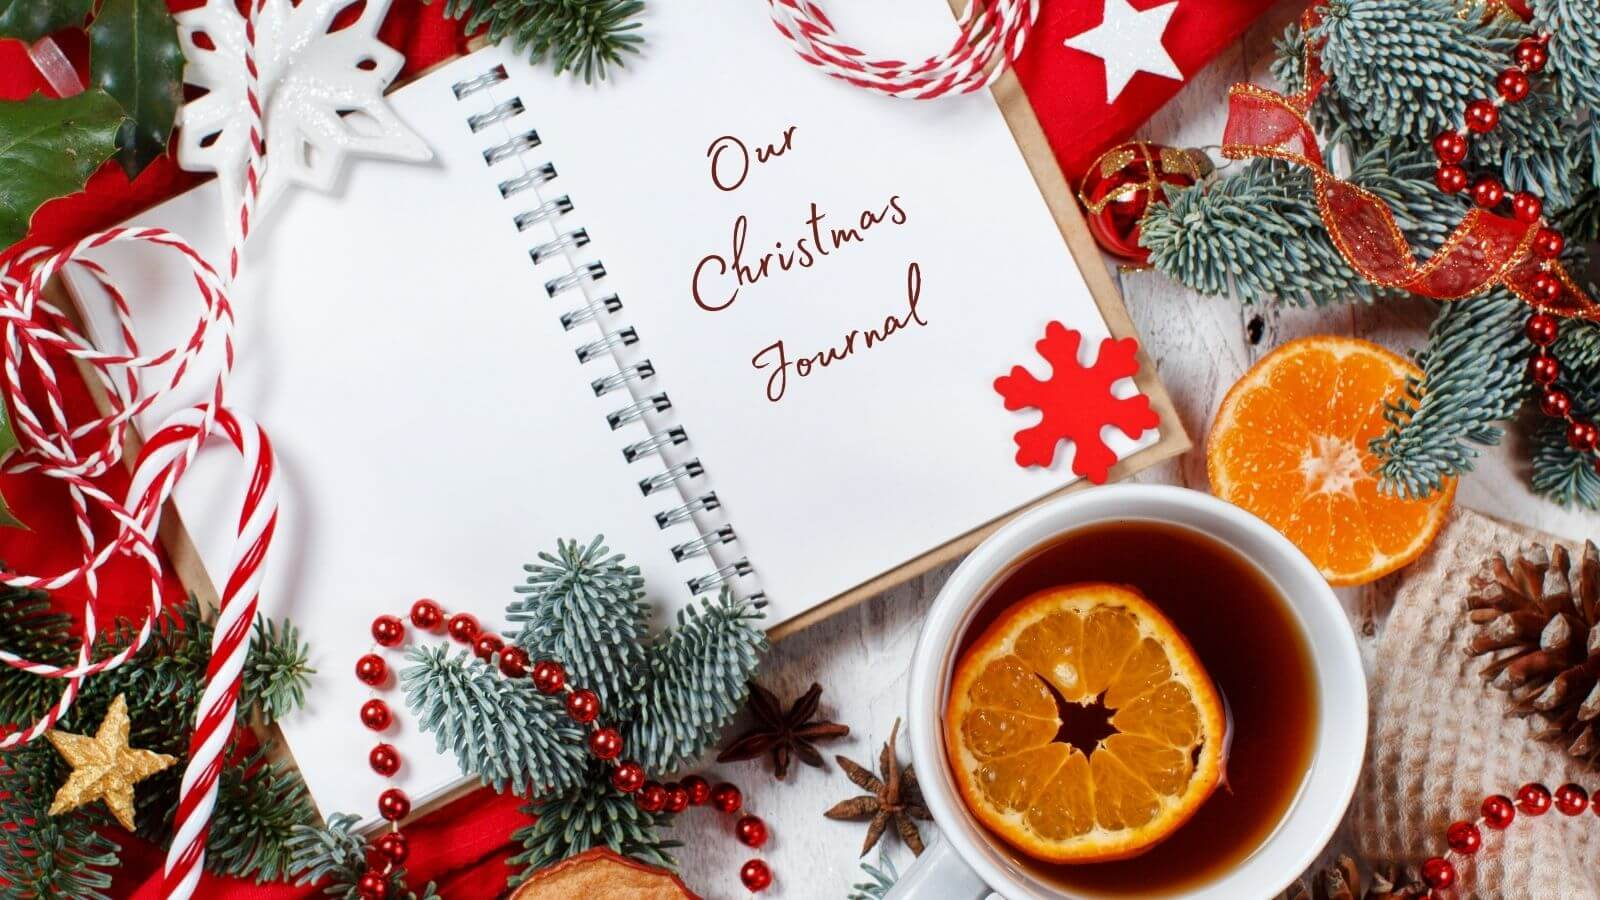 The Easiest (& Cheapest!) Family Heirloom: Our Christmas Journal